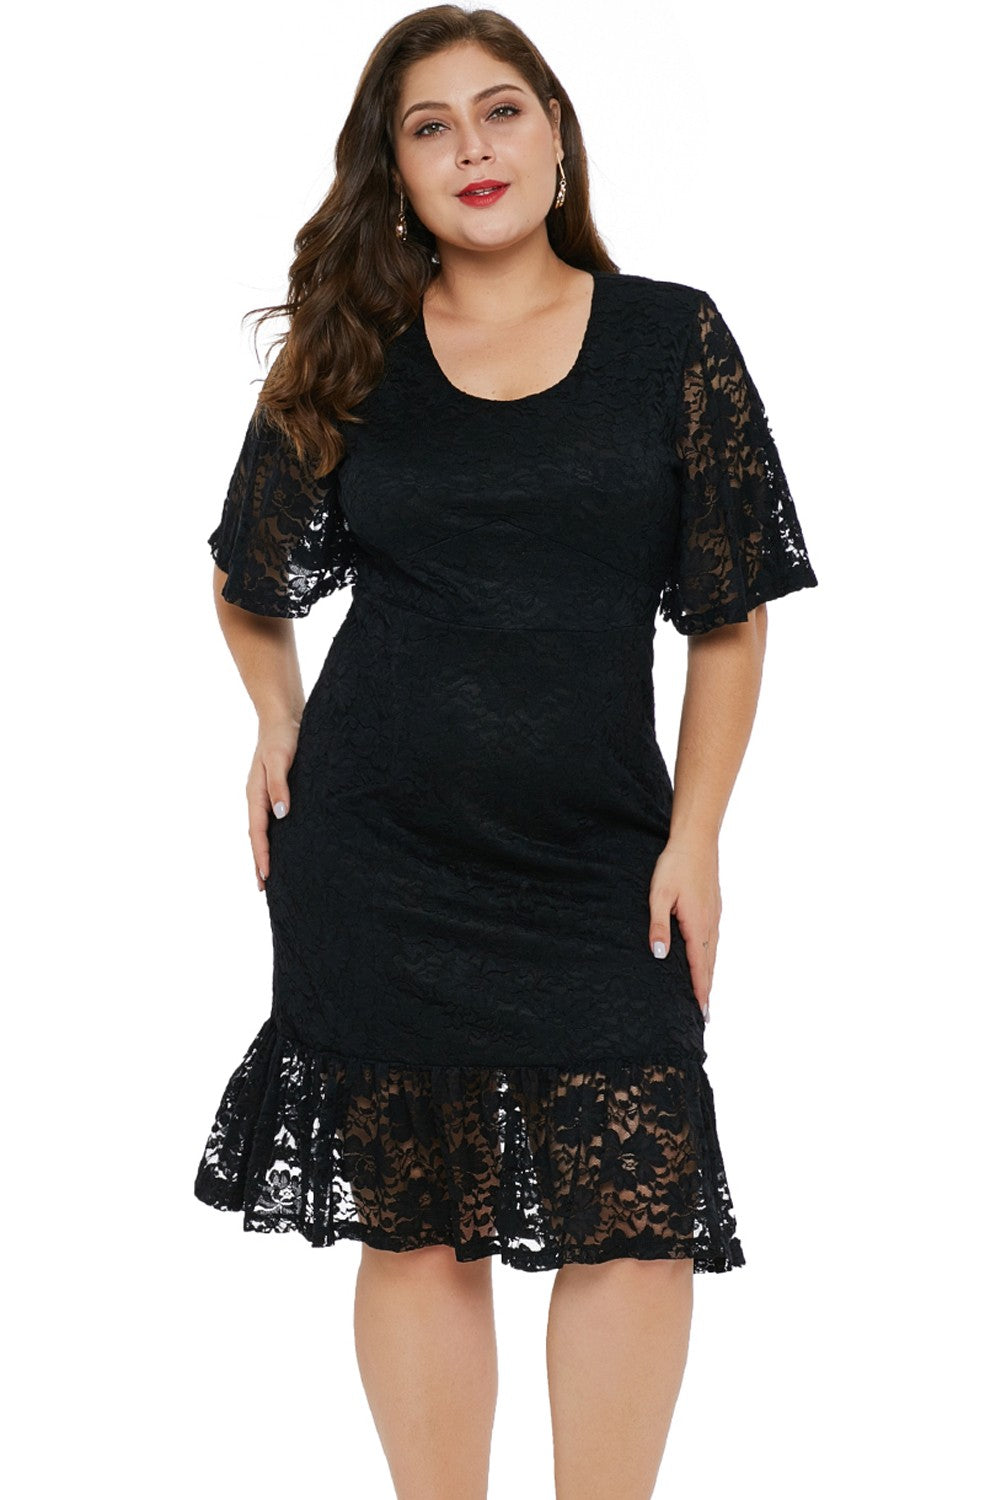 Plus Size Lace Dress and Black